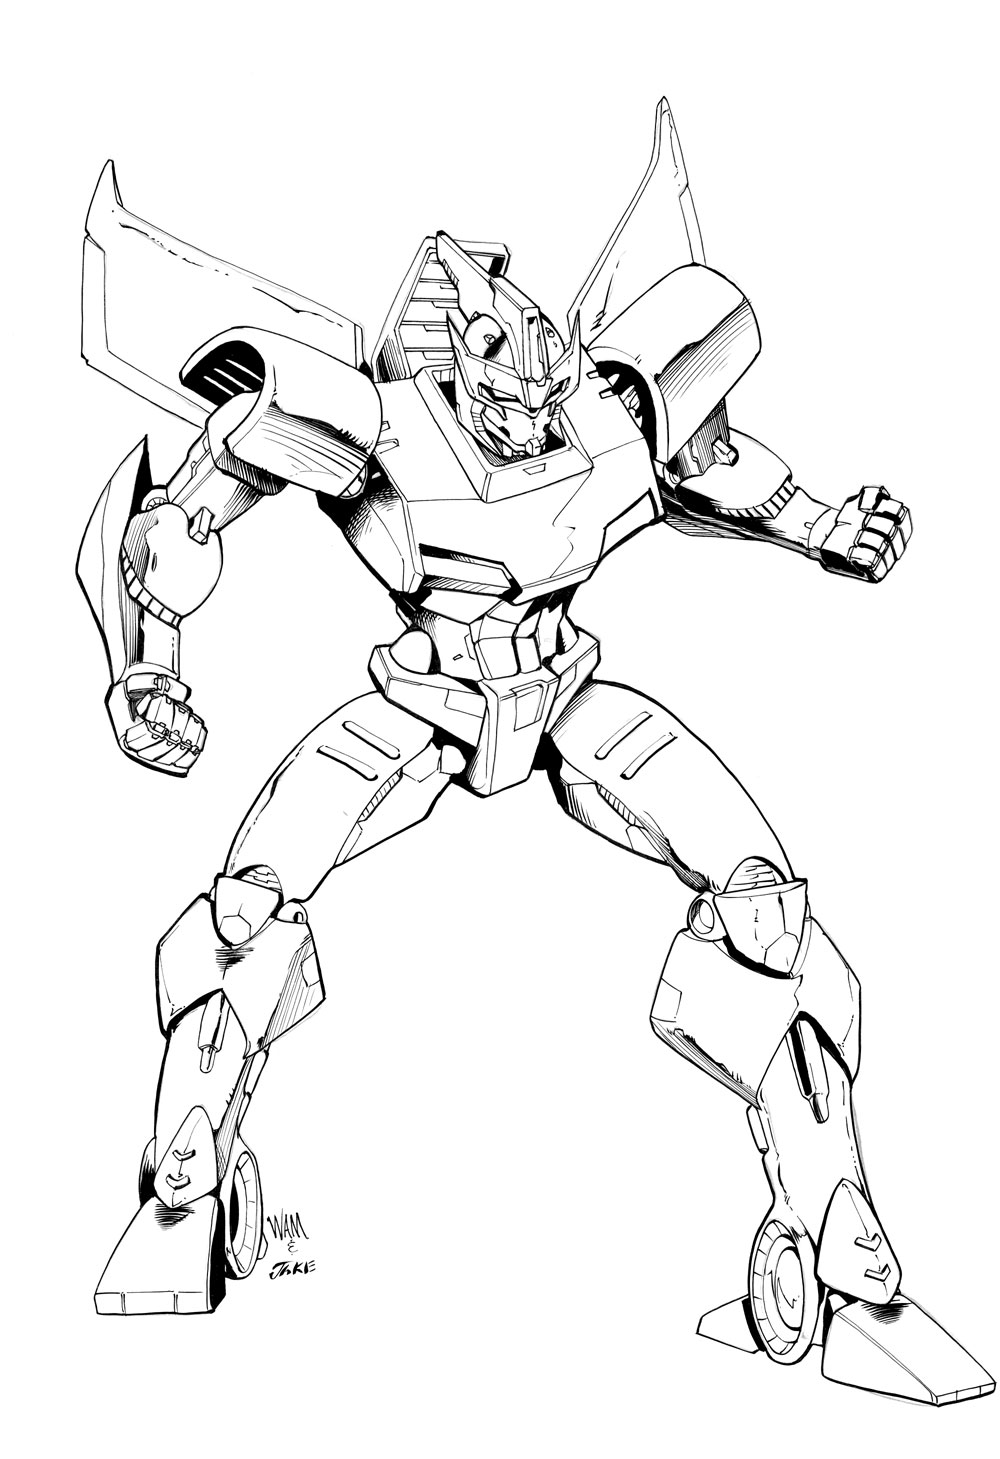 transtech prowl by inker guy on deviantart sideswipe transformers coloring pages bed mattress sale - Transformers Prime Coloring Pages